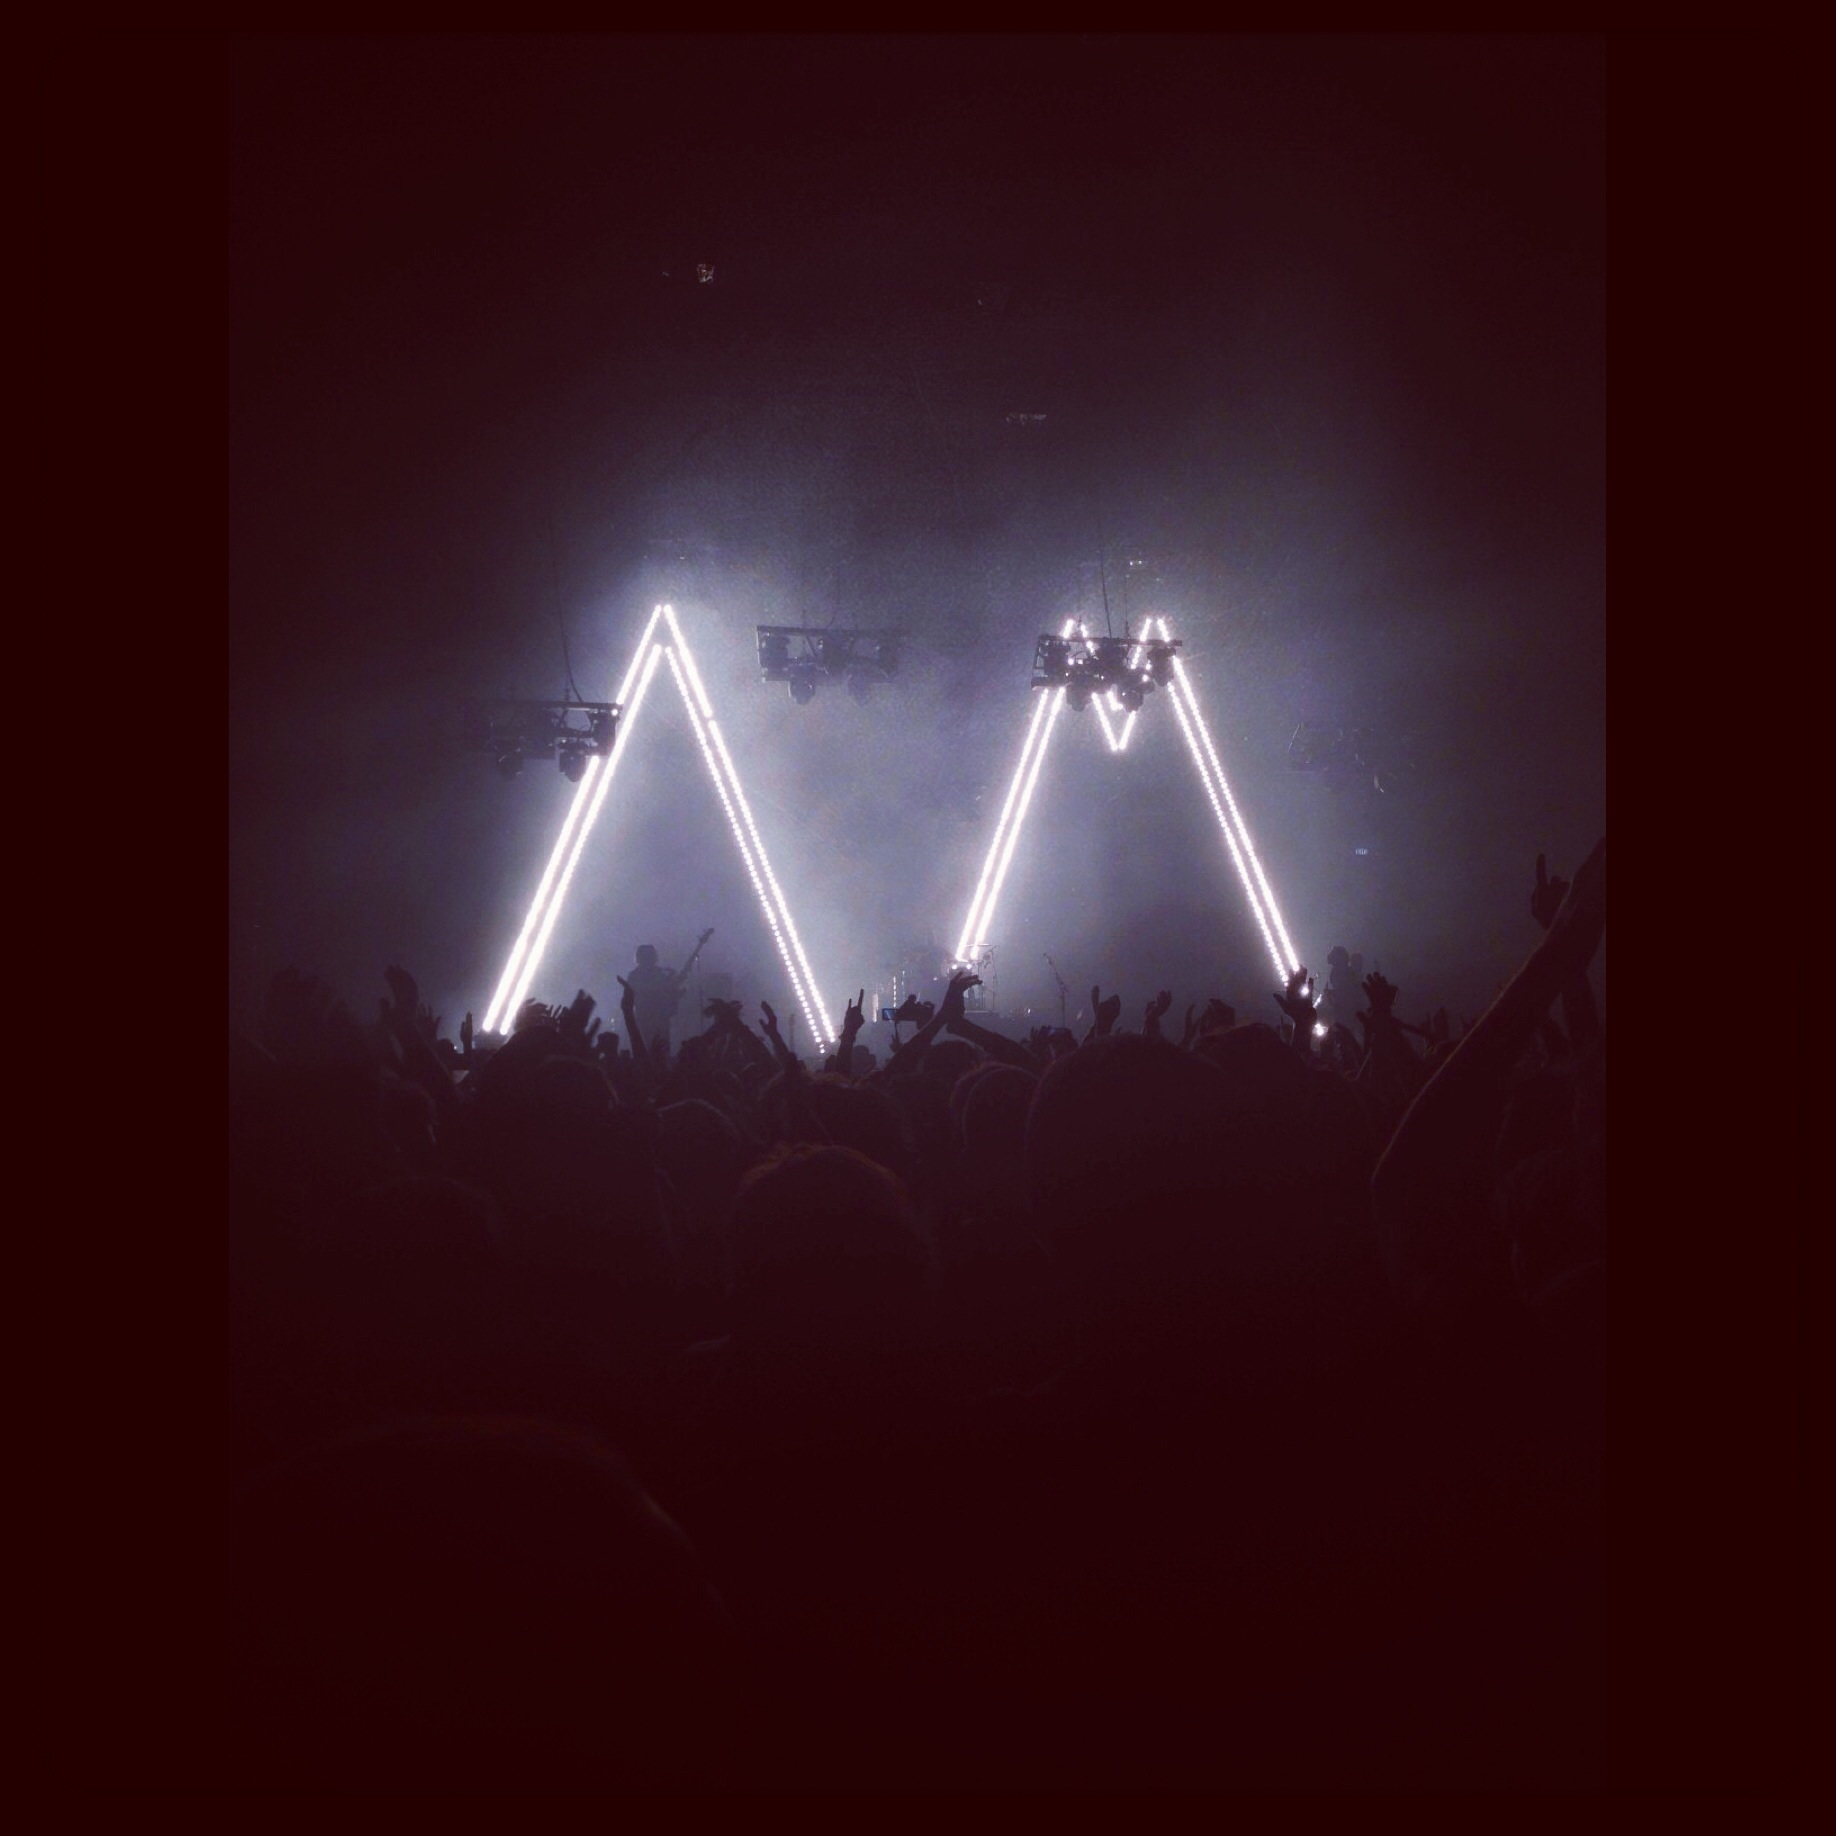 Arctic Monkeys live at Forum di Assago, Milan